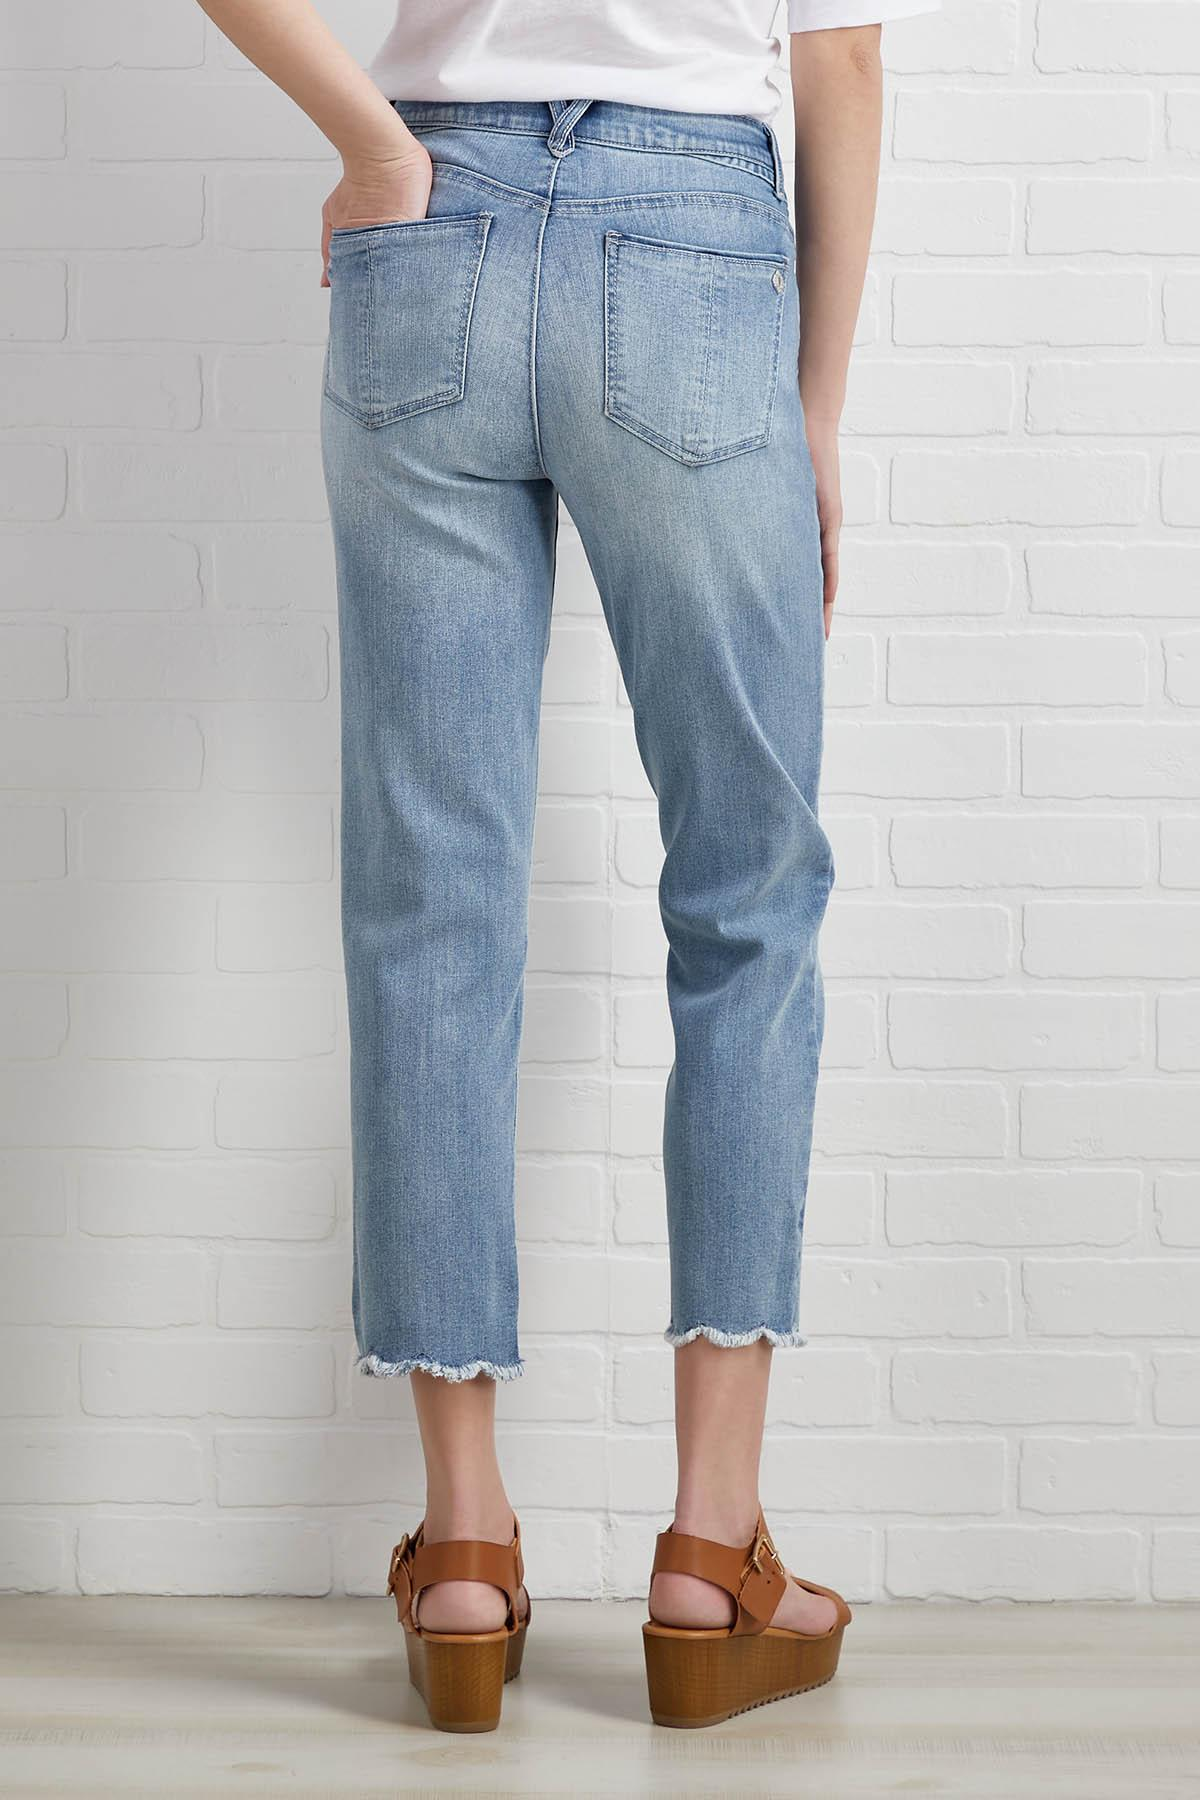 Straight Leg To The Point Jeans